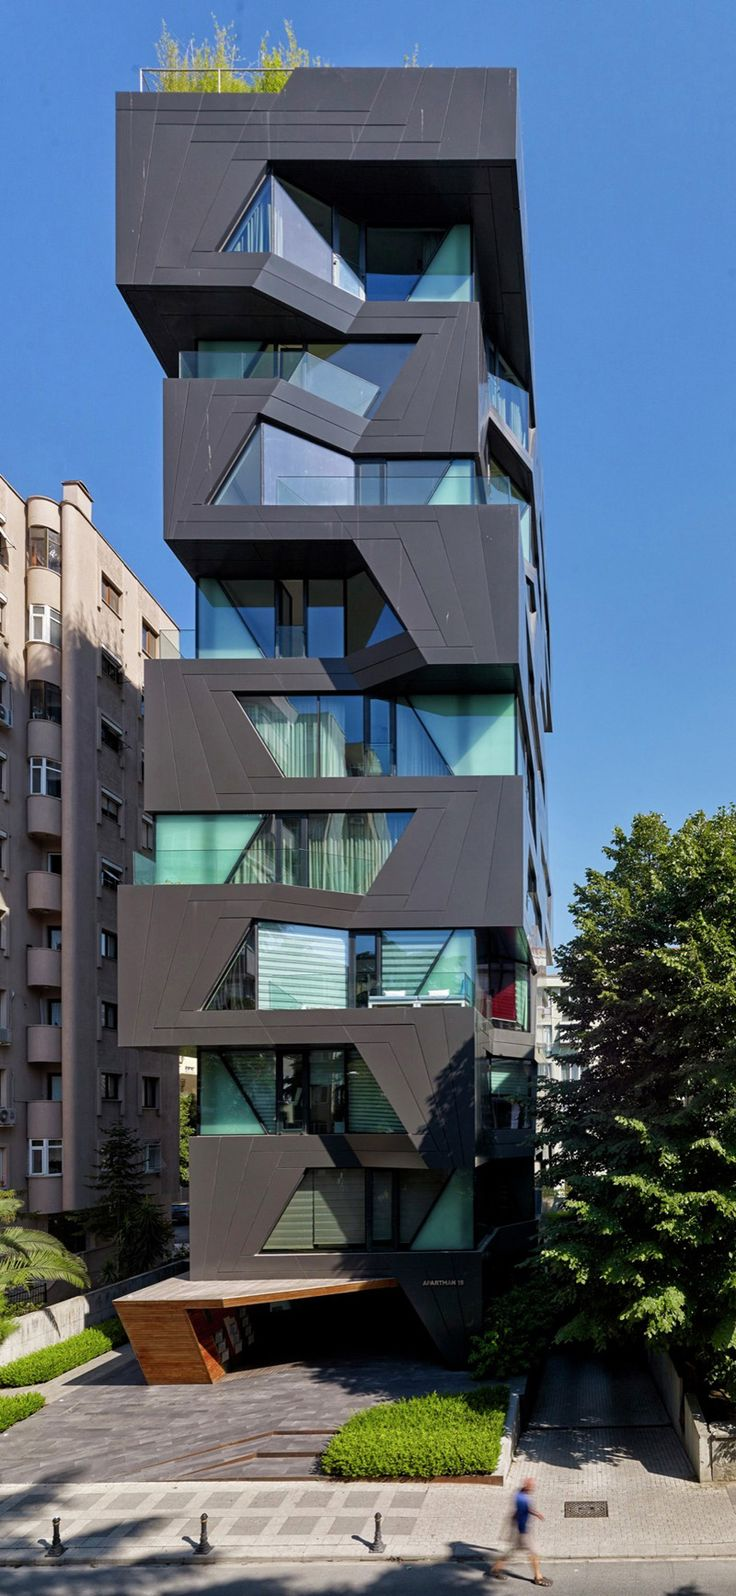 Best Images About INTERESTING PROJECTS On Pinterest - Cool apartment buildings